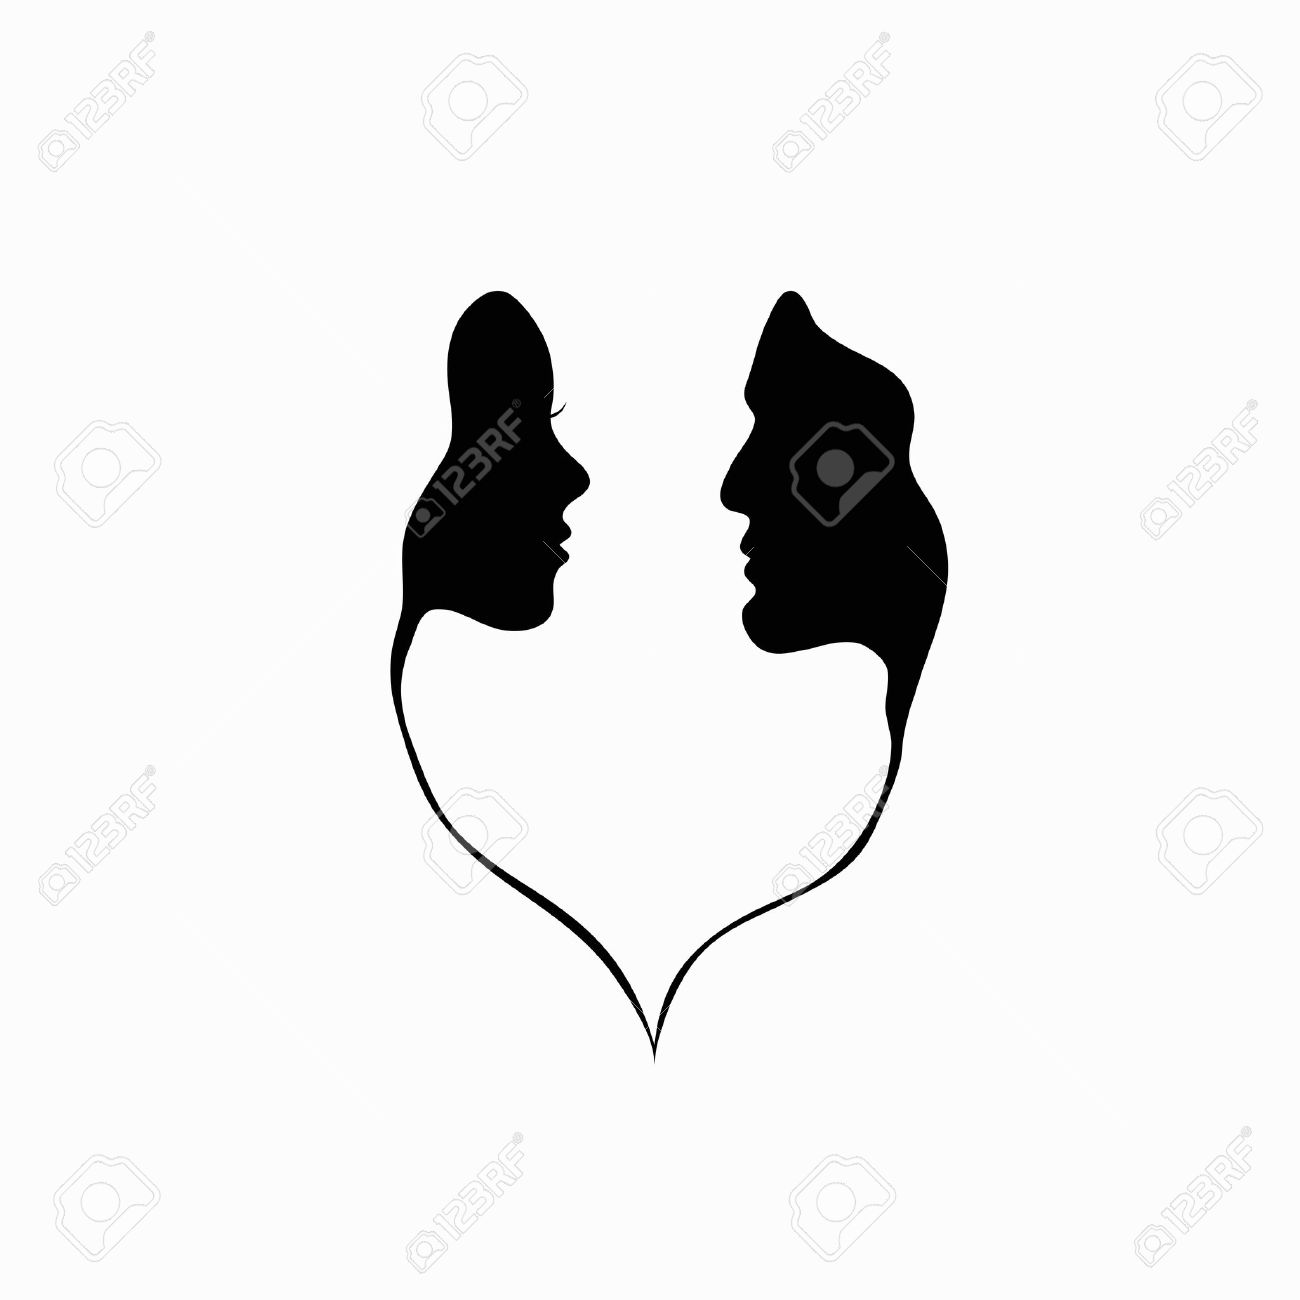 A man and a woman black and white silhouette of lovers stock vector 15416604